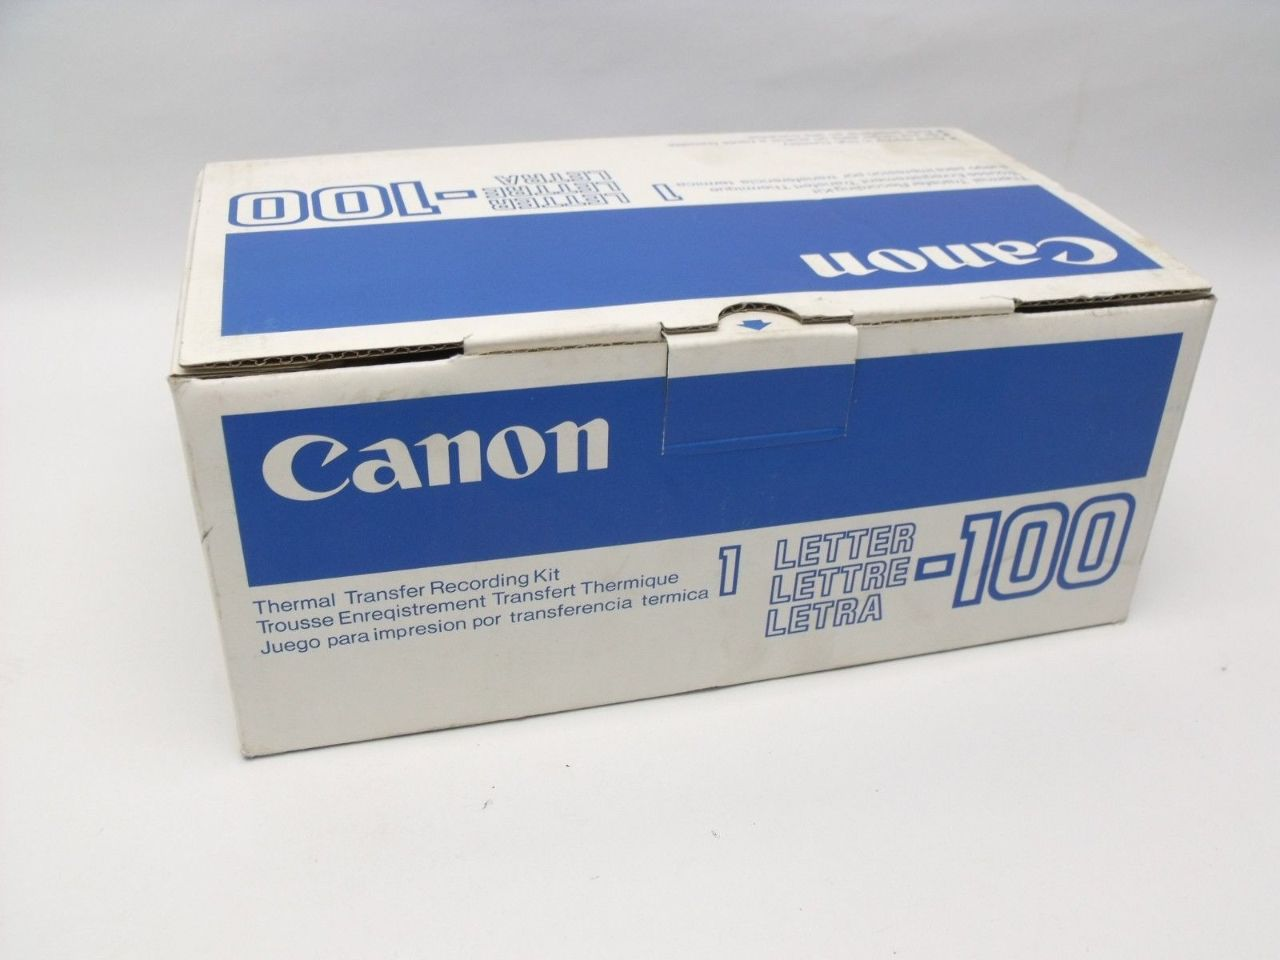 NEW Genuine Canon Letter 1 LETTER 100 Thermal Transfer Recording Kit